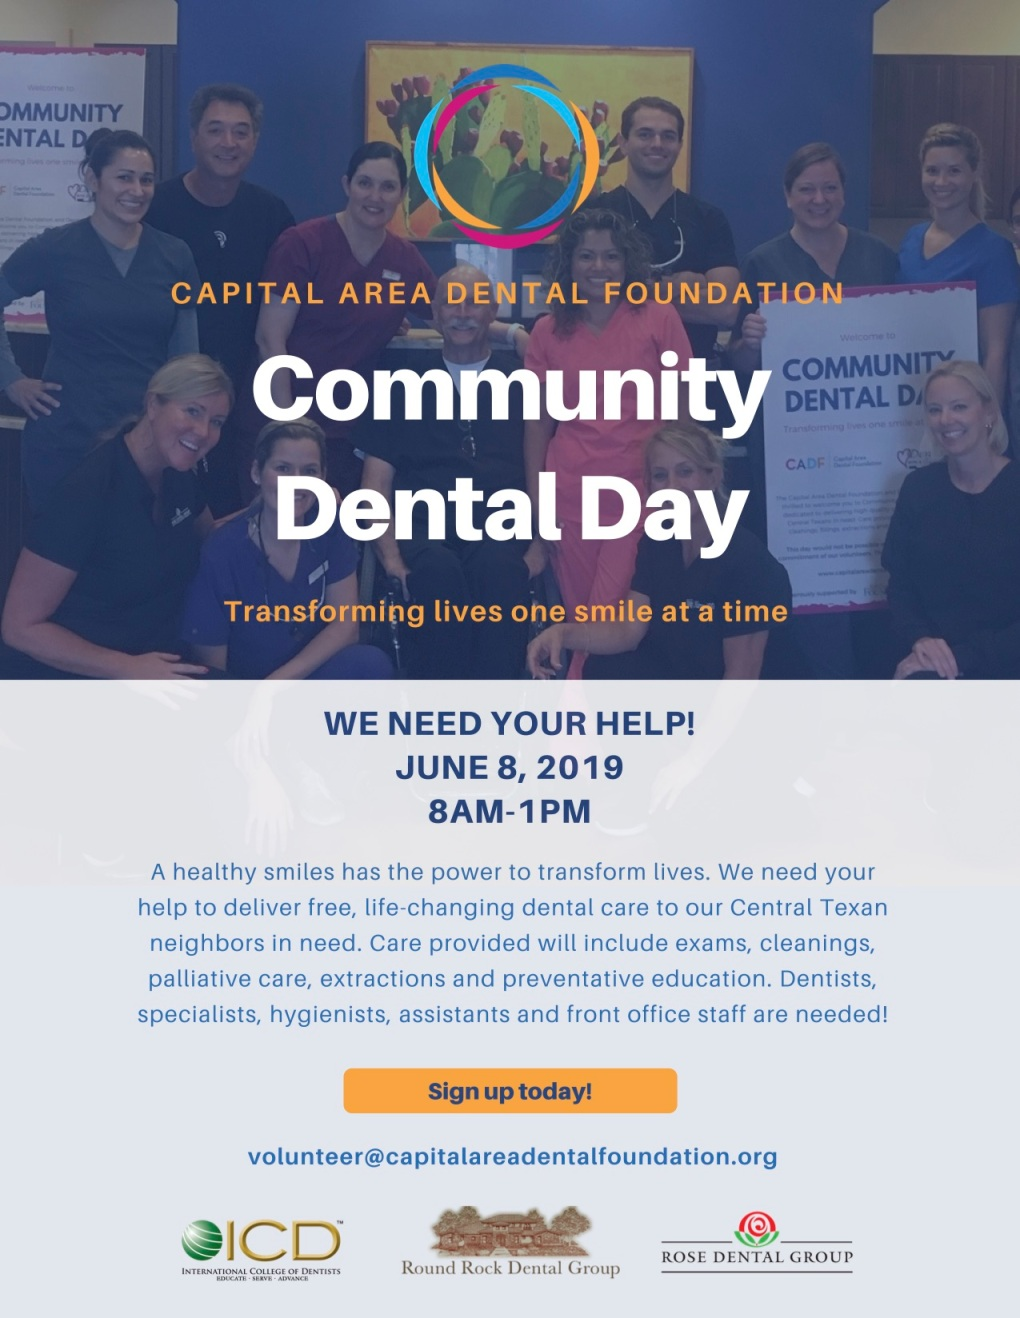 CADF Community Dental Day Flyers - June 2019_LINK